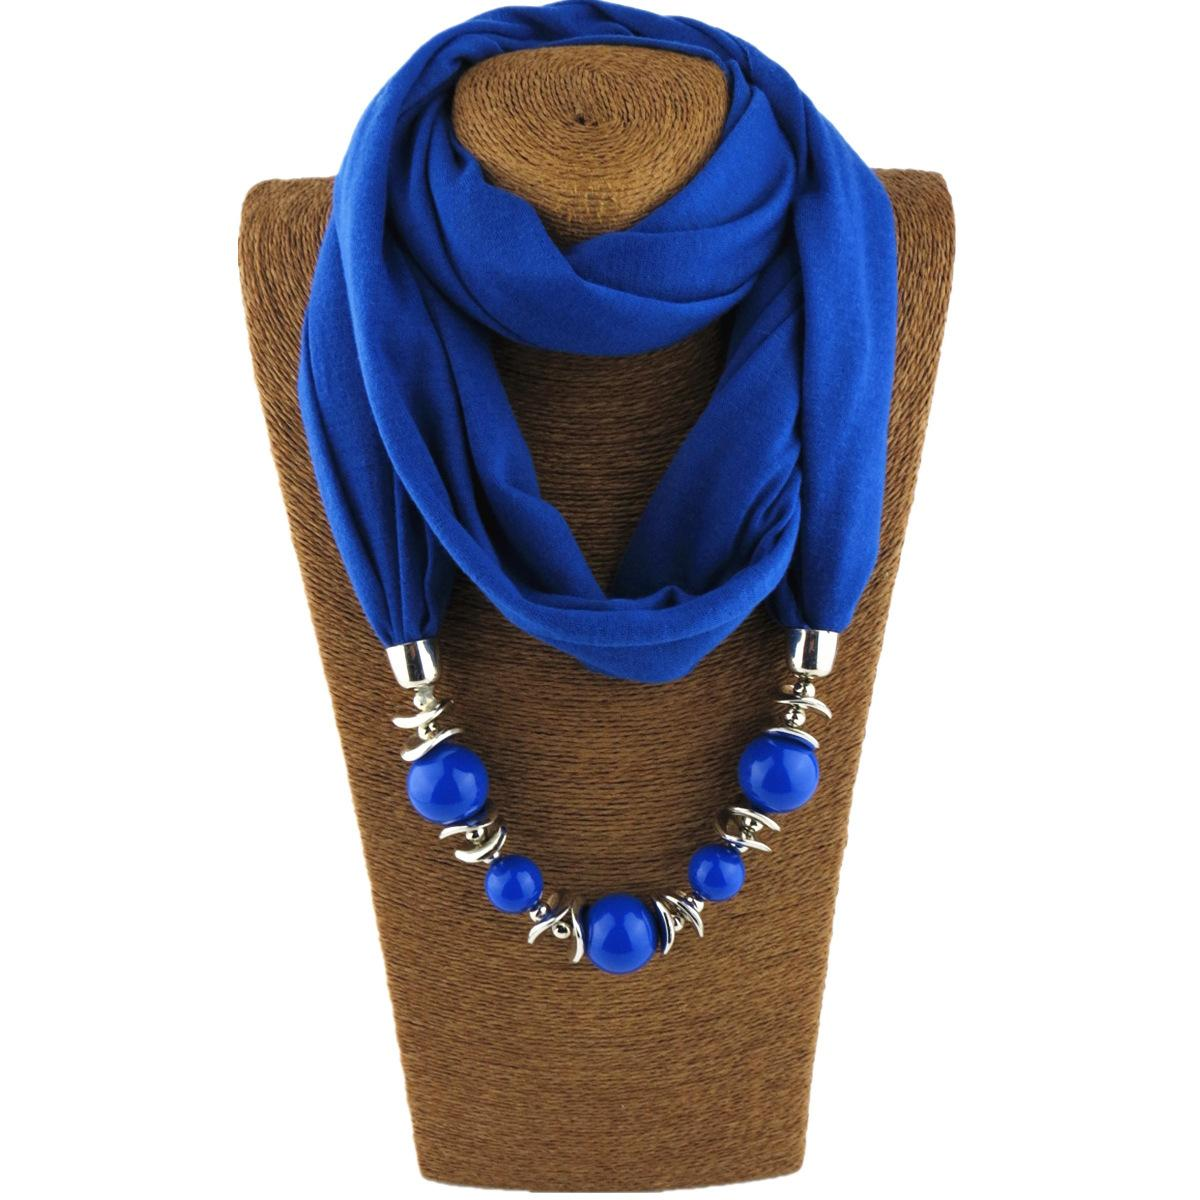 Pendants heart jewelry scarves for women scarf charms shawl scarf pendants heart jewelry scarves for women scarf charms shawl scarf ornaments necklace pendant scarf 160cm factory cost wholesale peony scarves silver scarf aloadofball Image collections